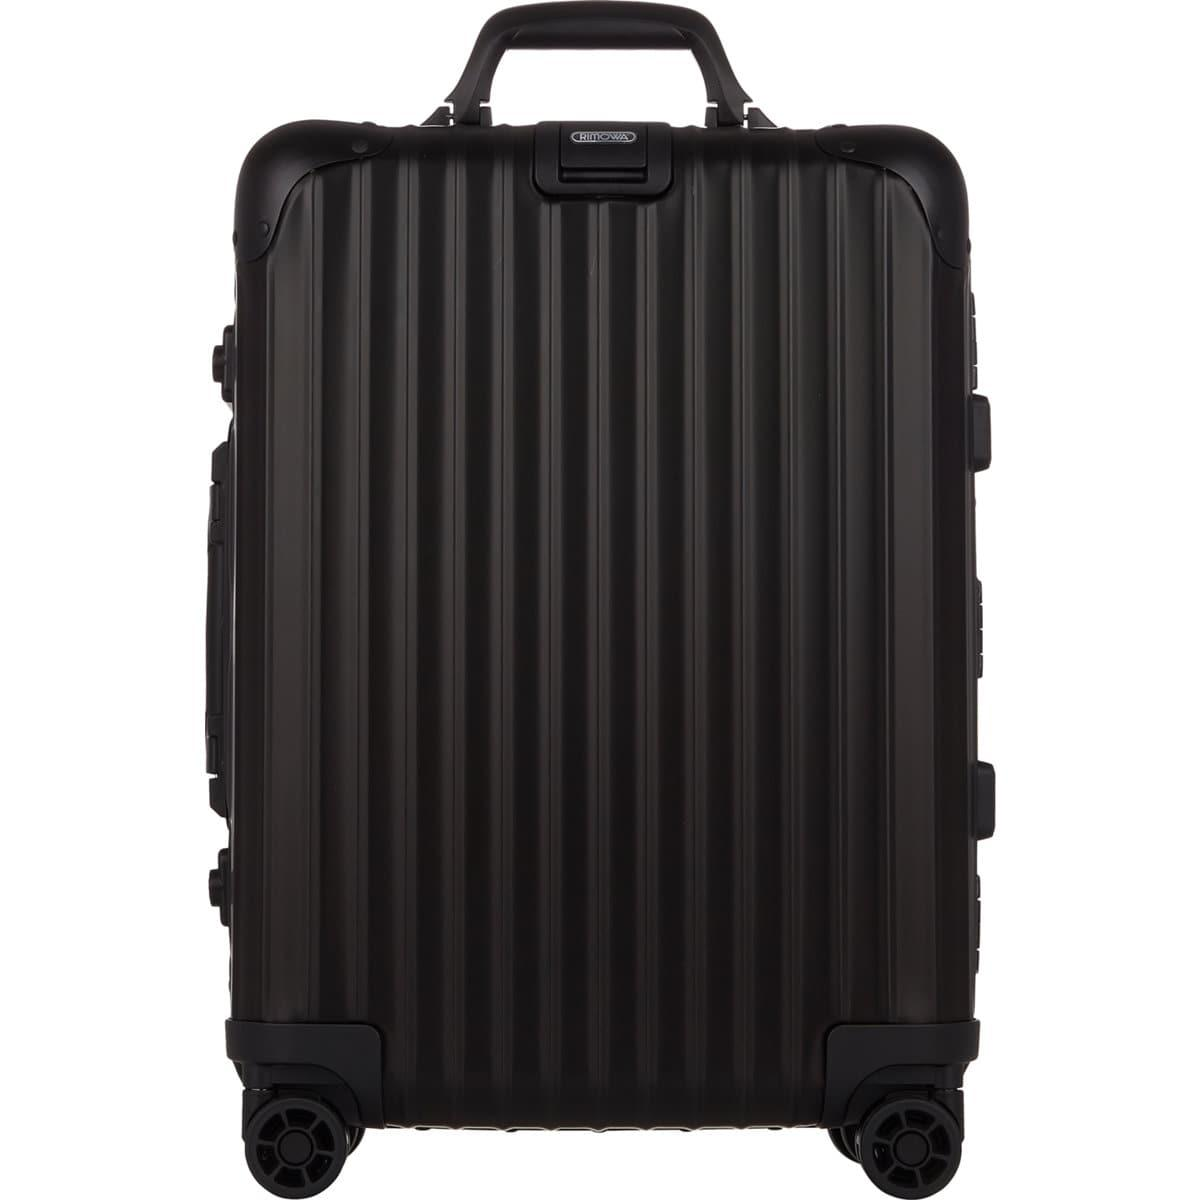 rimowa topas stealth 22 cabin multiwheel iata trolley in black for men save 18 lyst. Black Bedroom Furniture Sets. Home Design Ideas